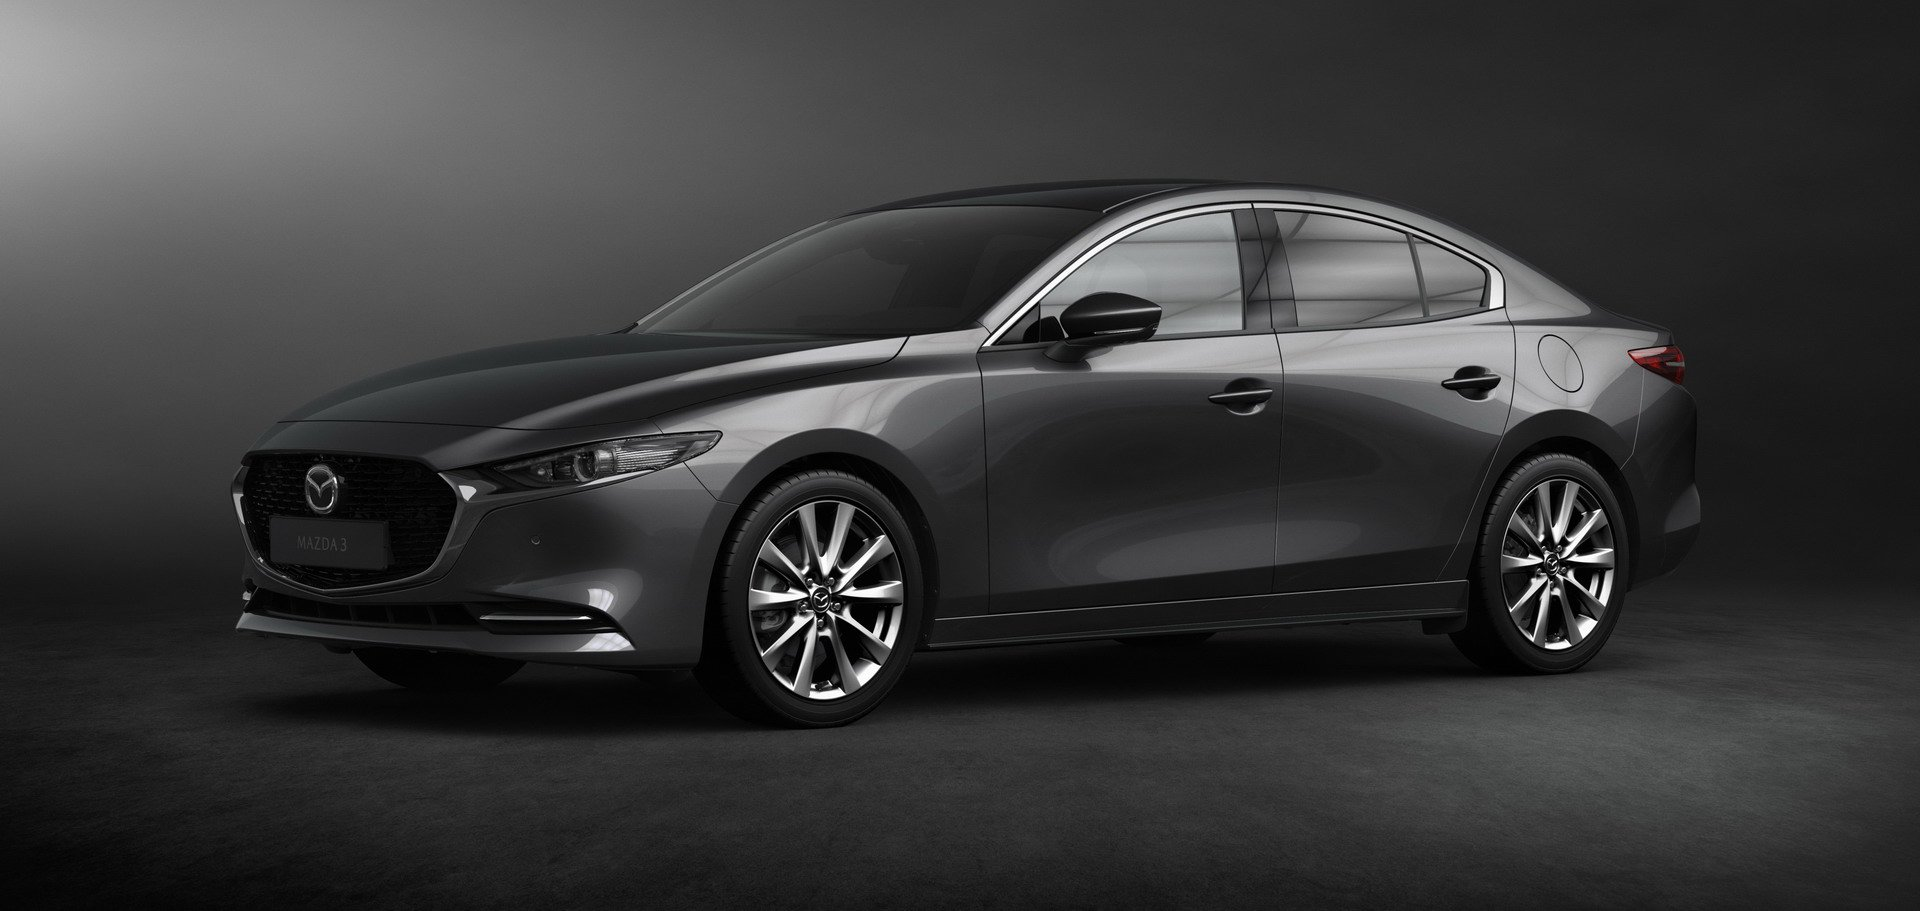 Mazda3 Hatchback and Mazda3 sedan 2019 (21)